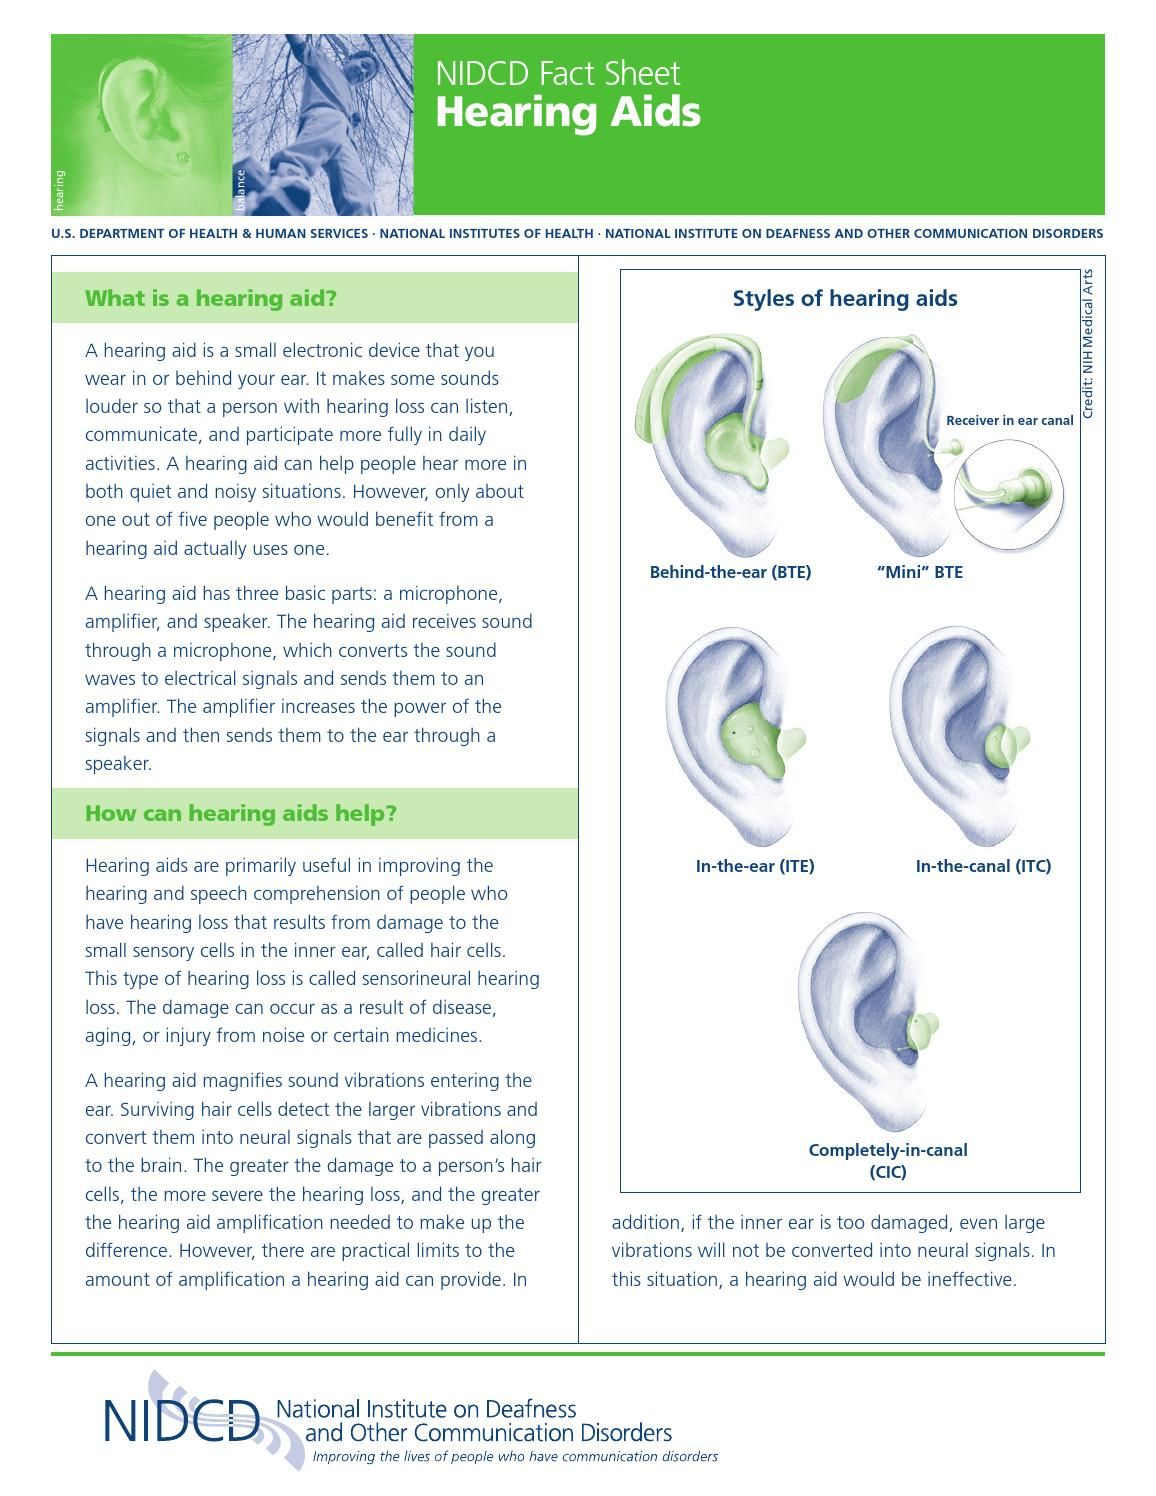 Pin on hearing aids online